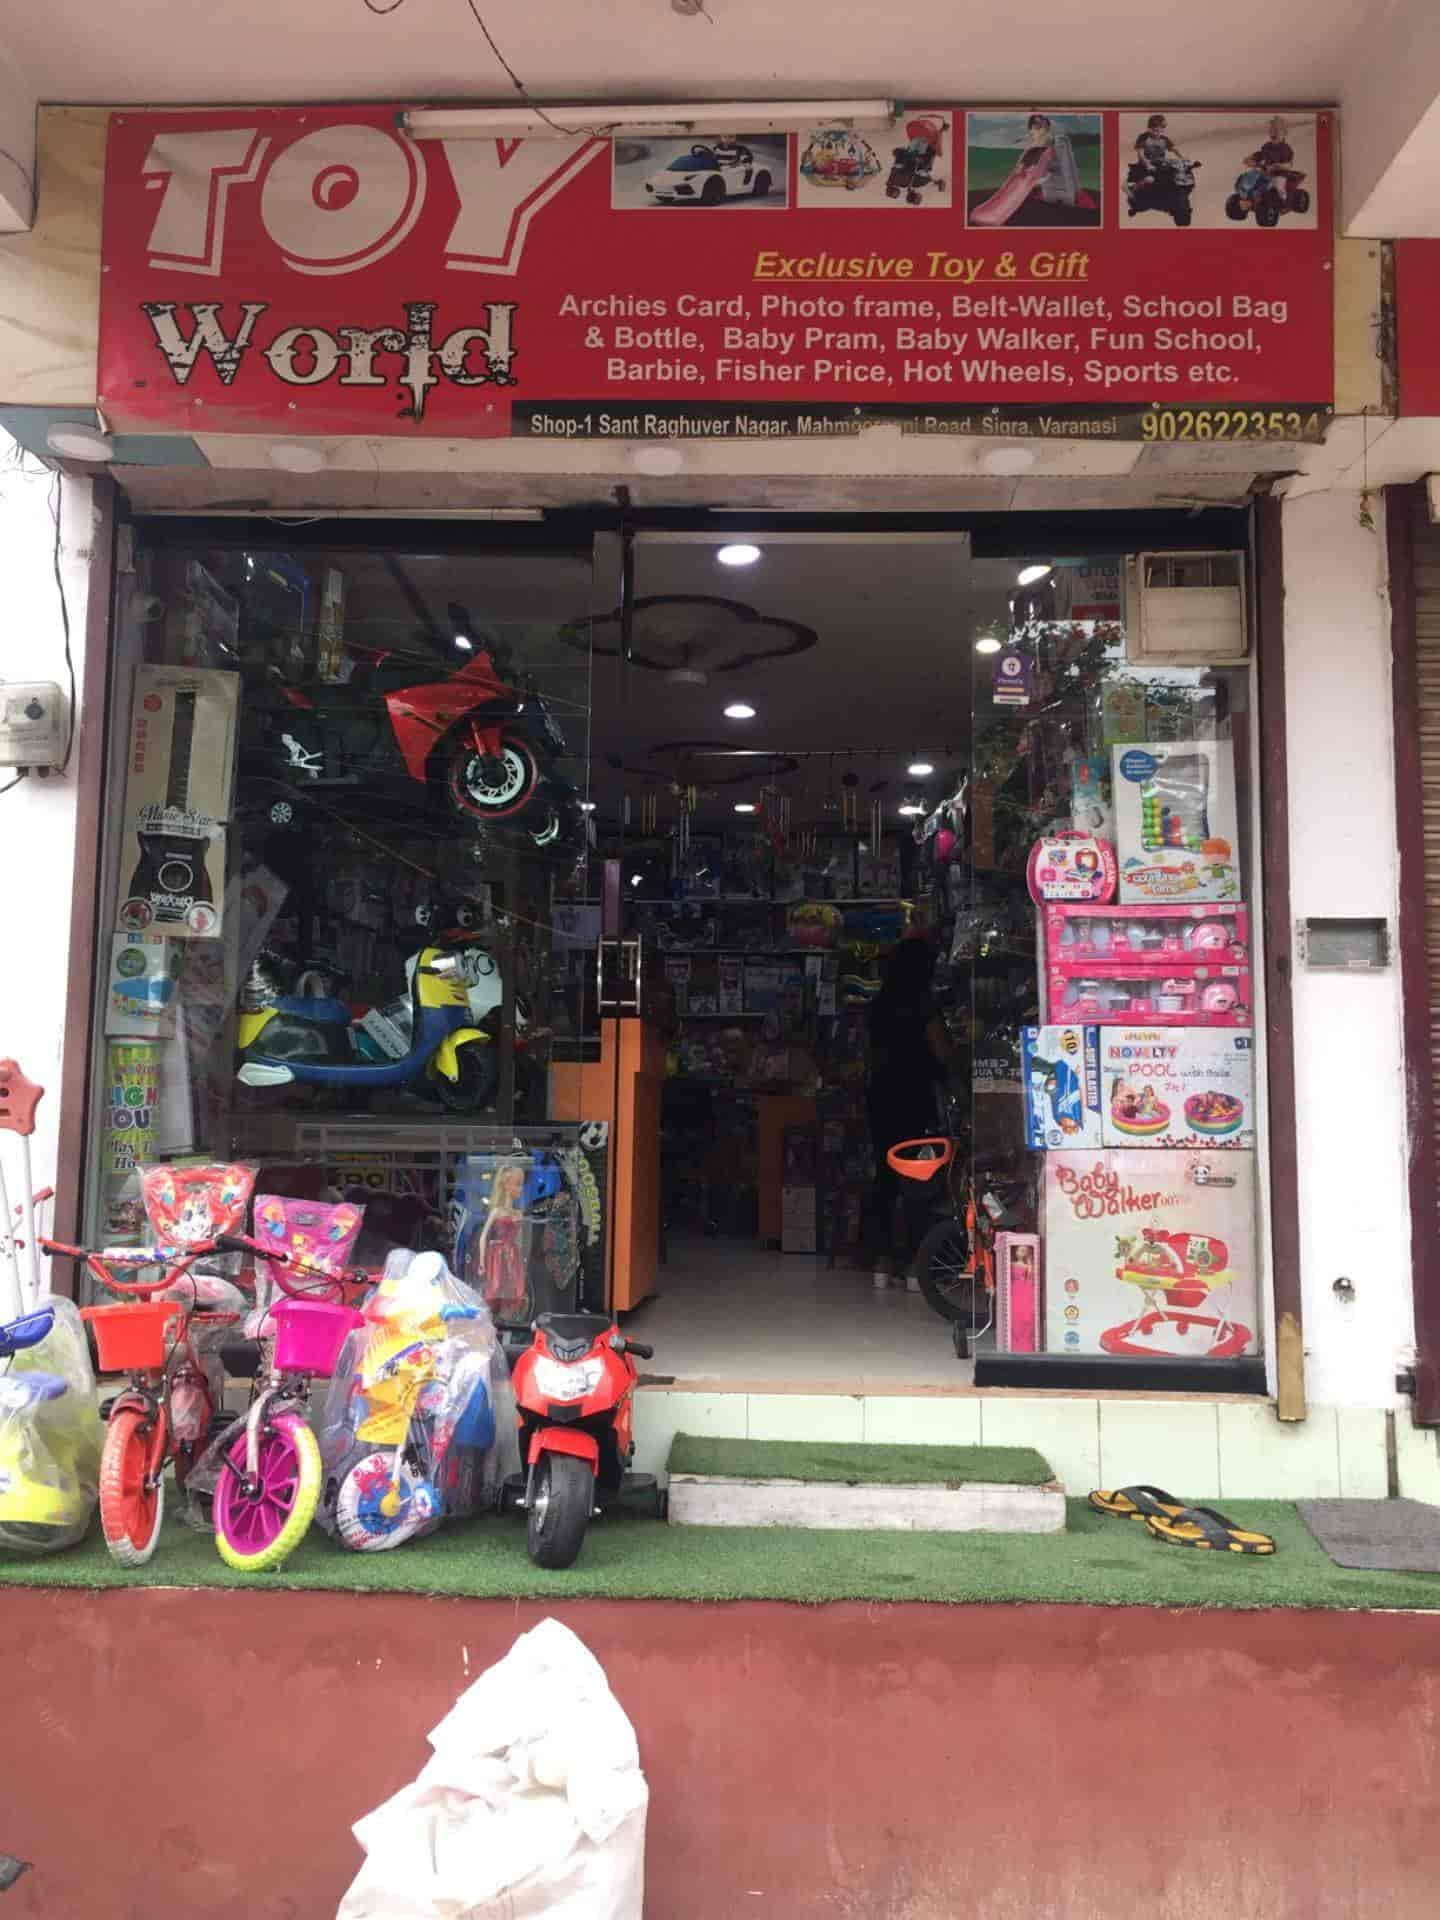 toy world photos, sigra, varanasi- pictures & images gallery